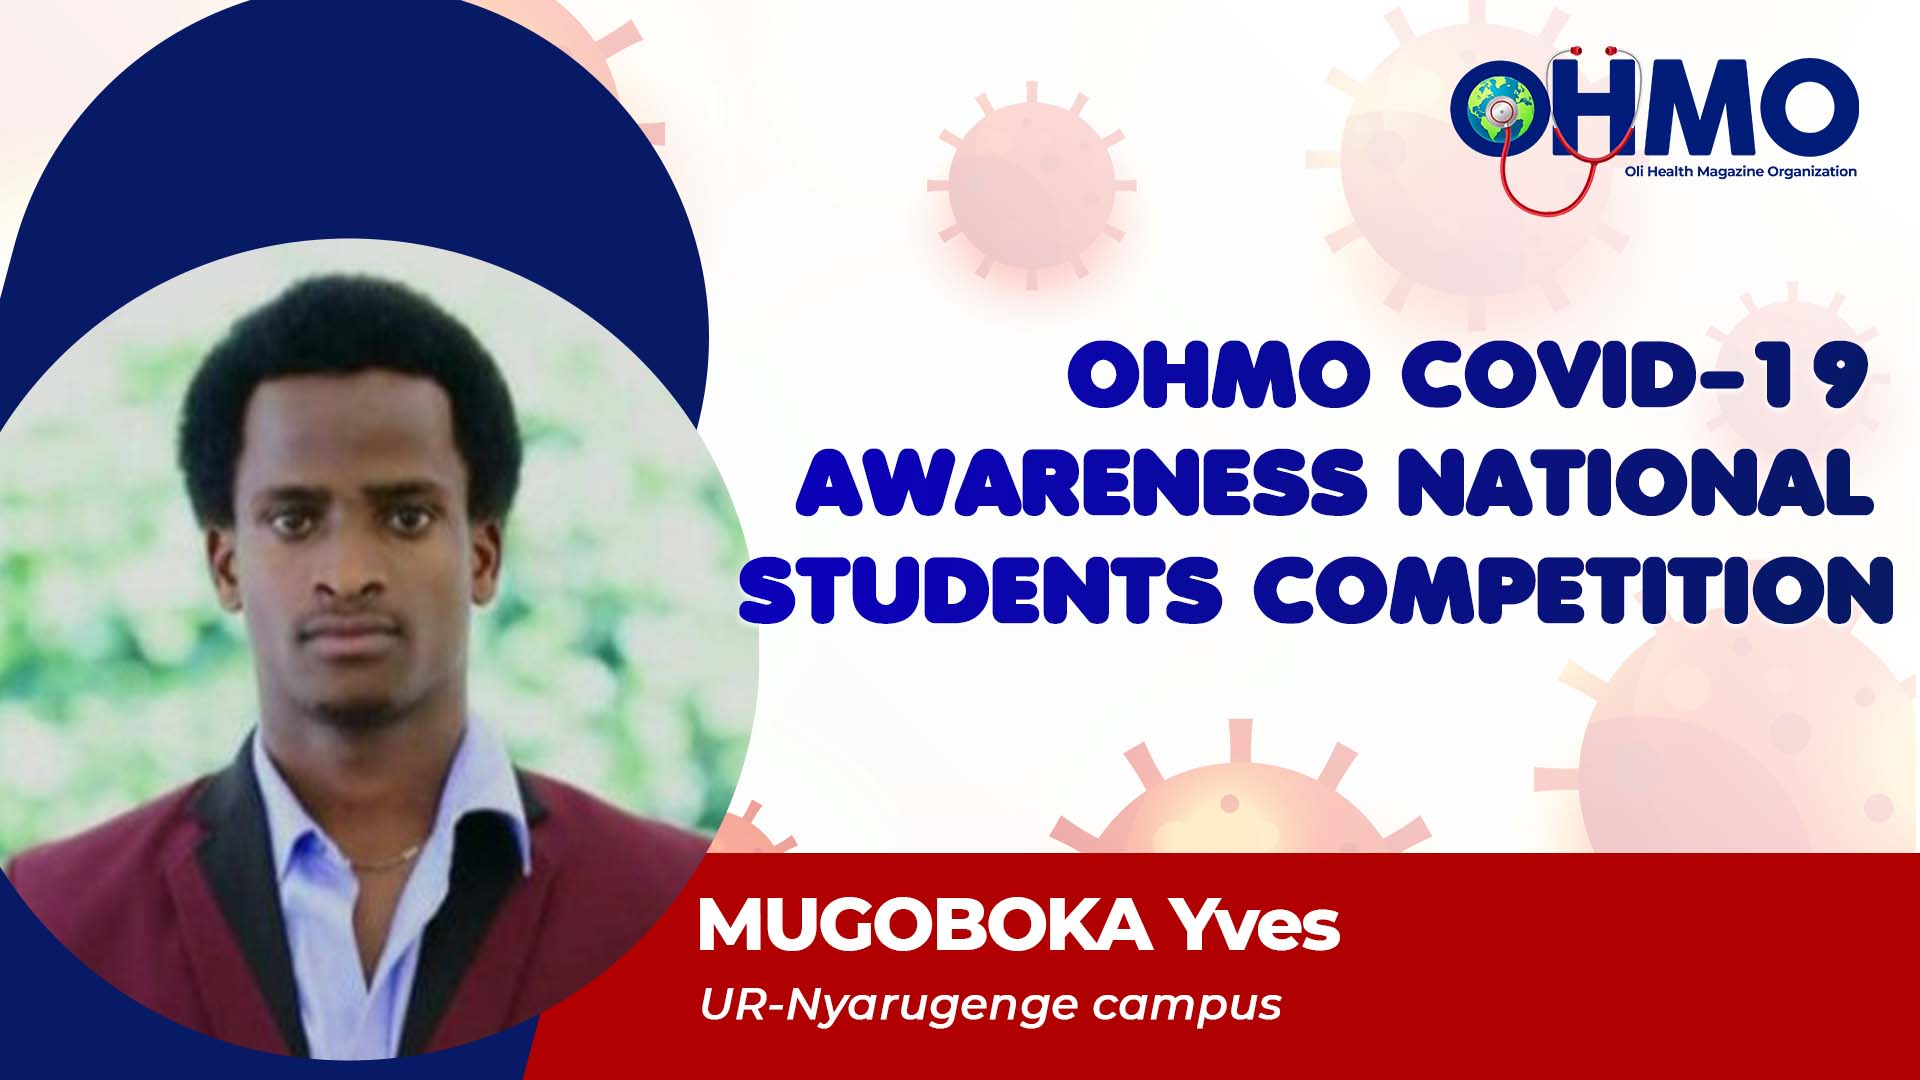 Mitigation to Take a Stand Against COVID-19 - MUGOBOKA Yves from UR (ENTRY 55)